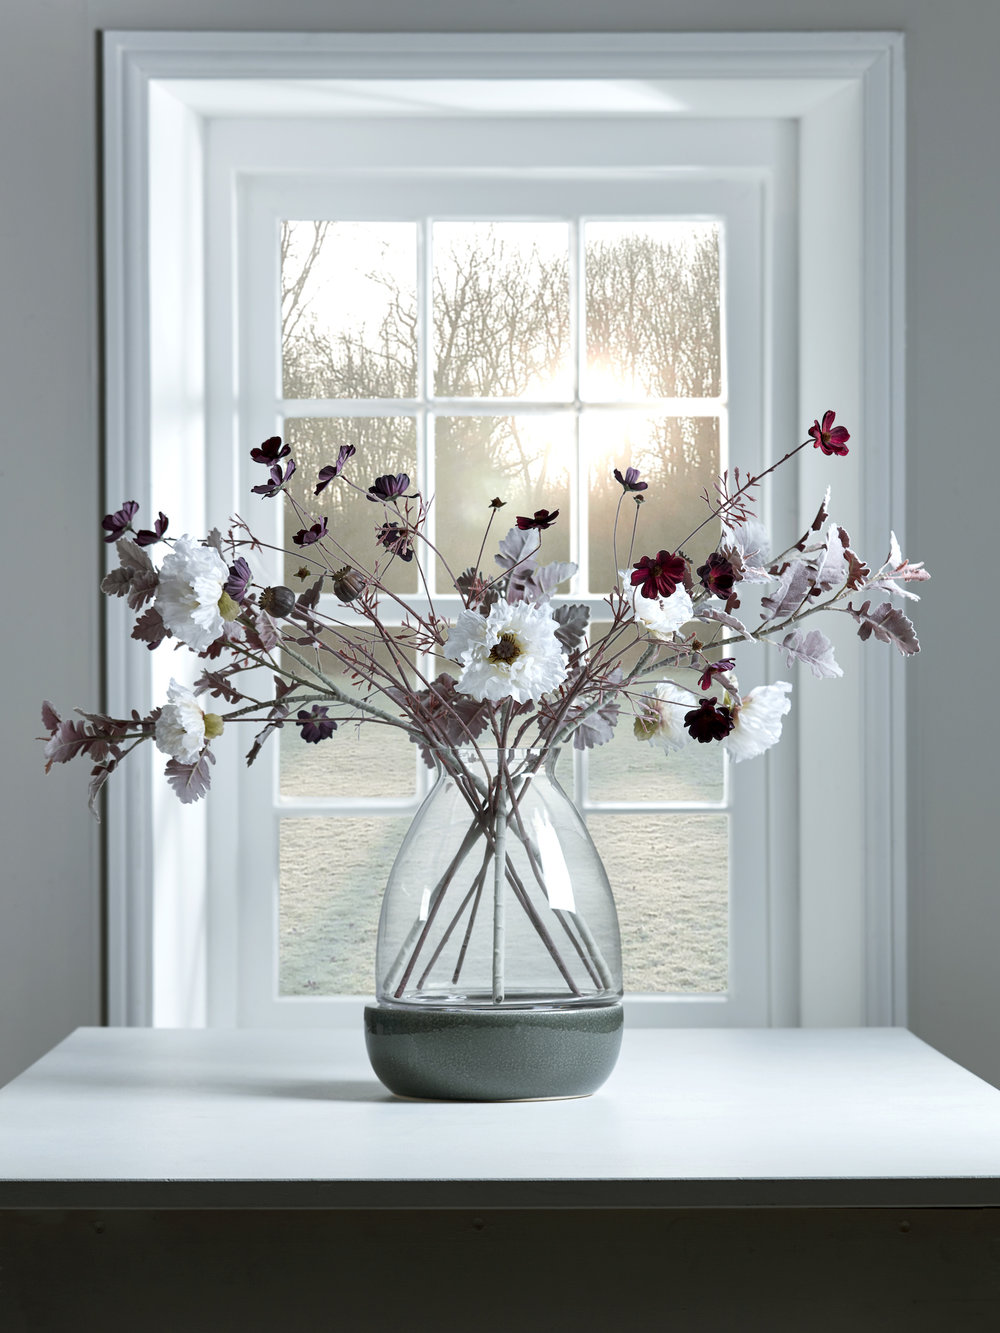 www.coxandcox.co.uk Faux Floral HERO Three Flocked Faux Leaf Sprays - Blush H-3LEAF £35 Three Faux Poppy Sprays - White H-3POPWHT £25 Three Faux Cosmos - Burgundy H-3COSMOS £25 Mila Vase H-MILAVASE £60.jpg